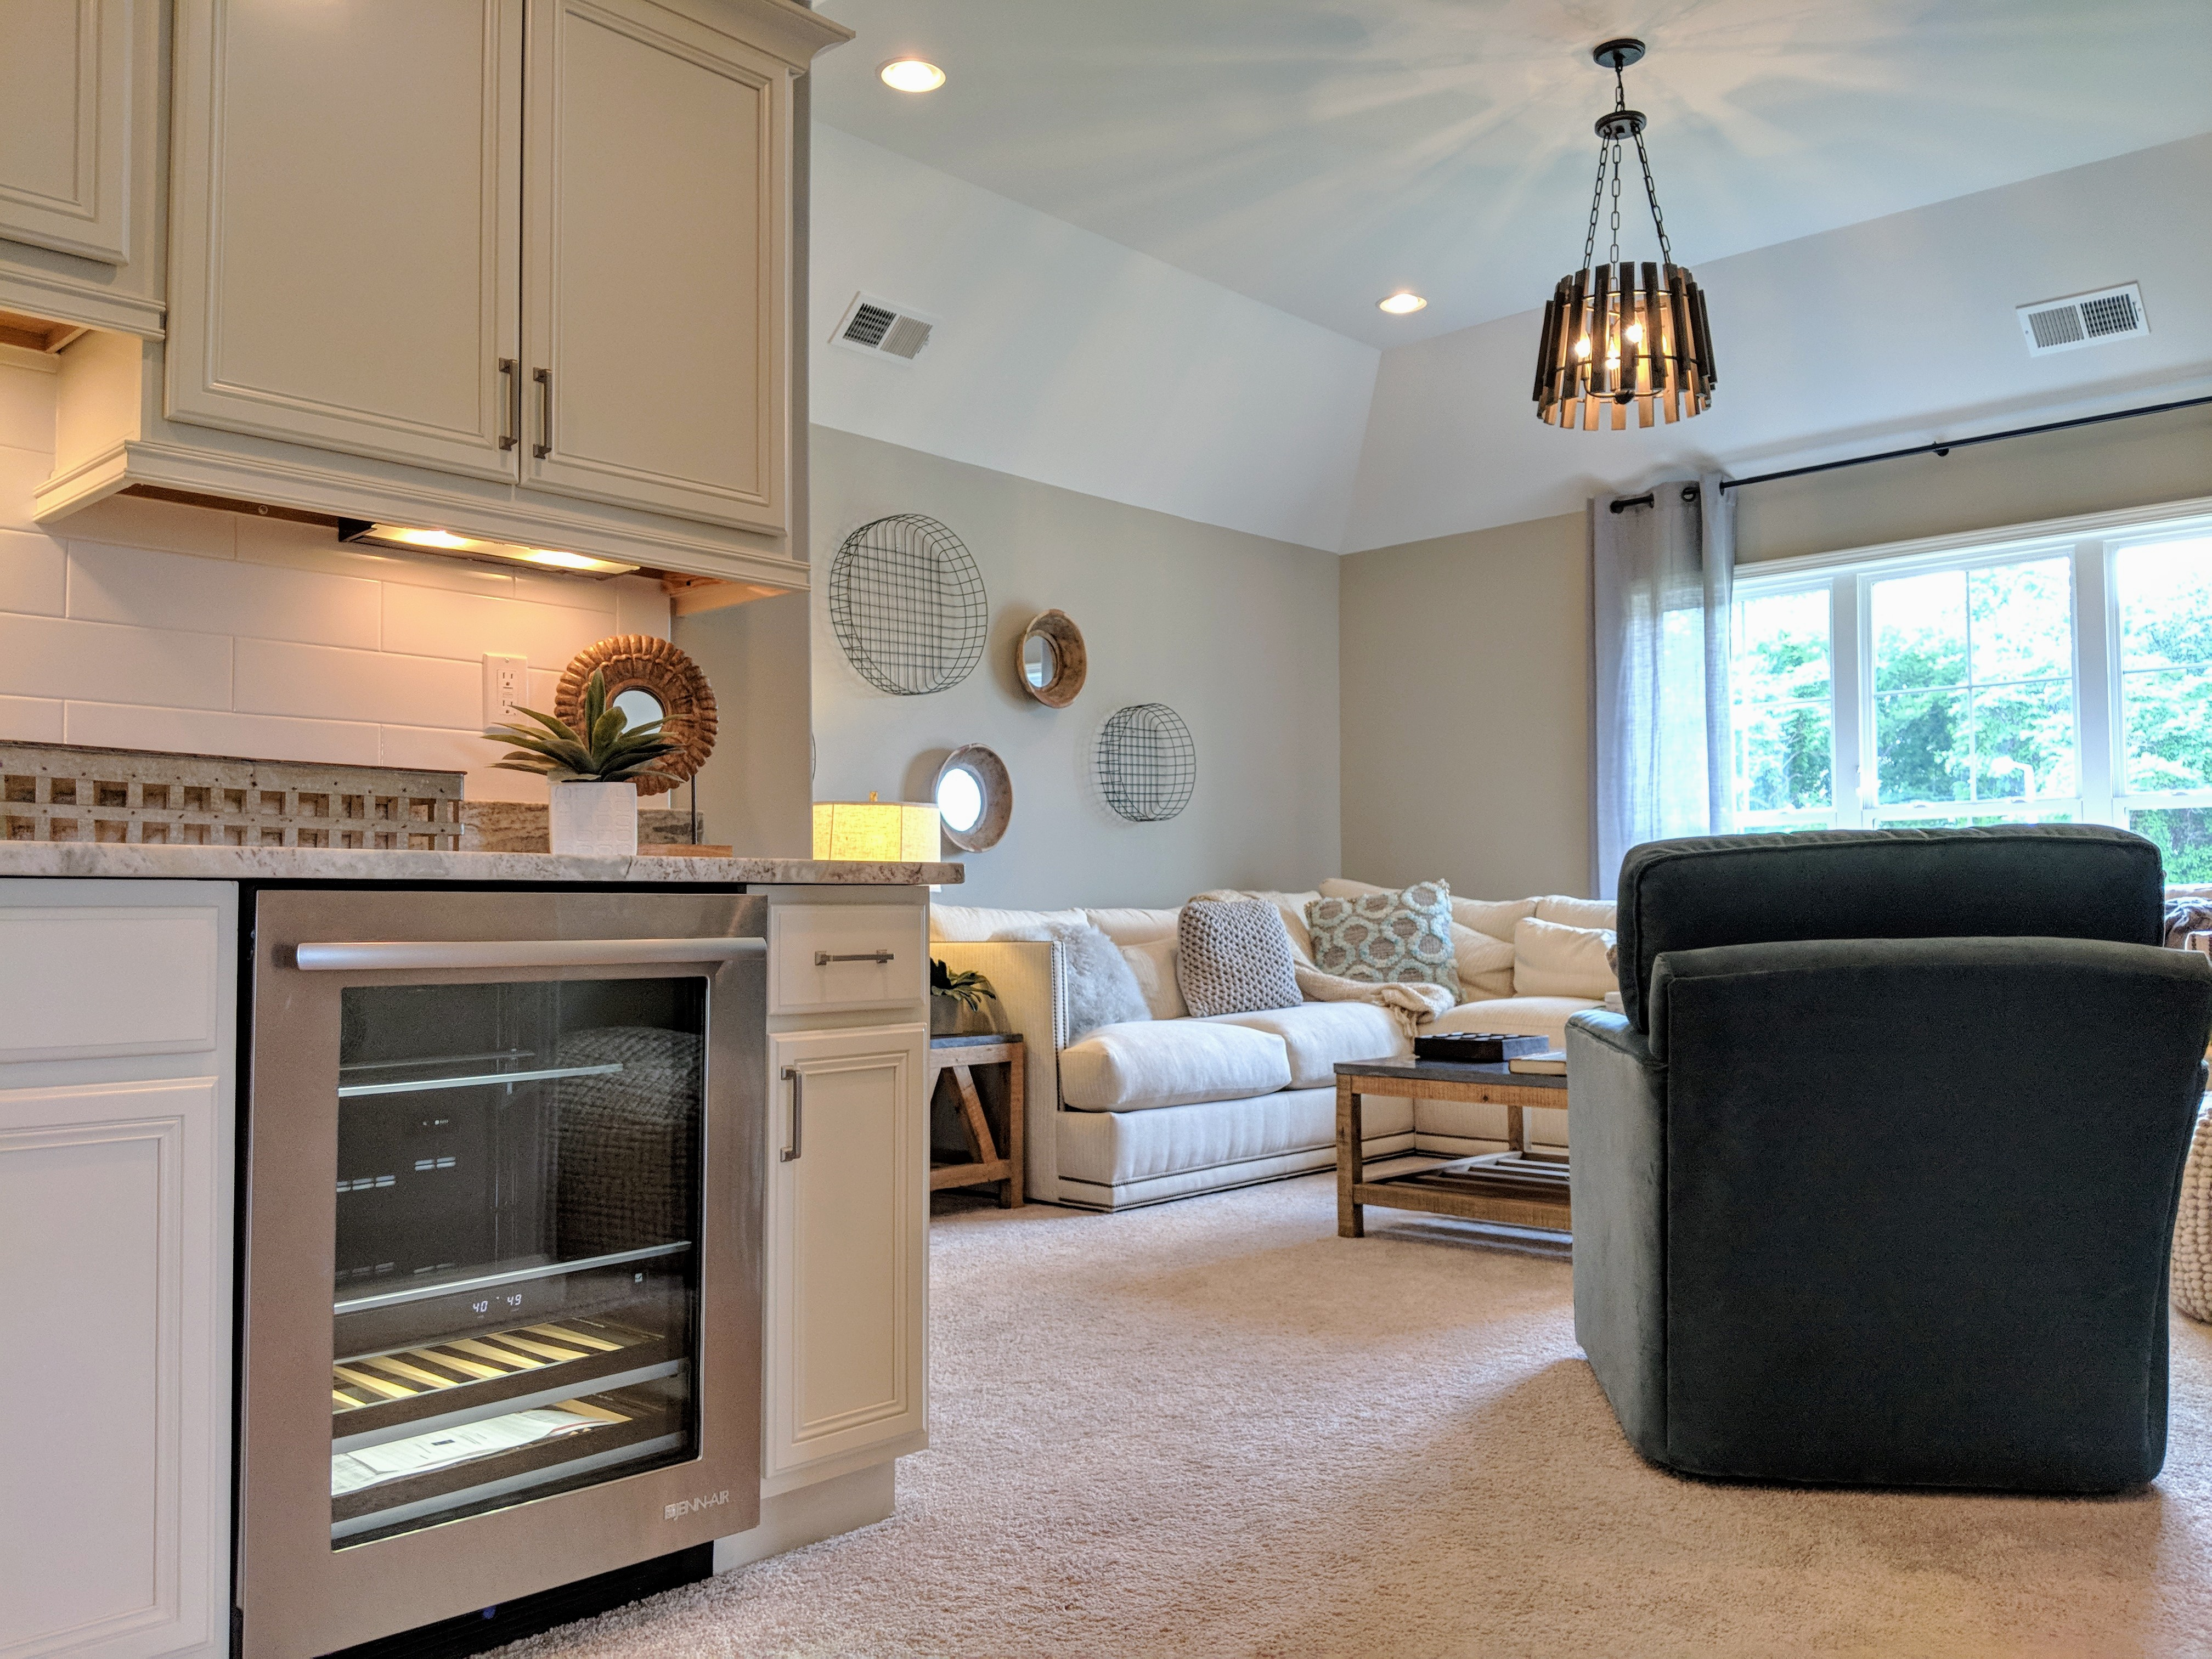 Homes for sales in Memphis area. Guest suite with kitchenette. Plenty of room behind the kitchenette (tall an open attic space) to add a private bath to this room too.